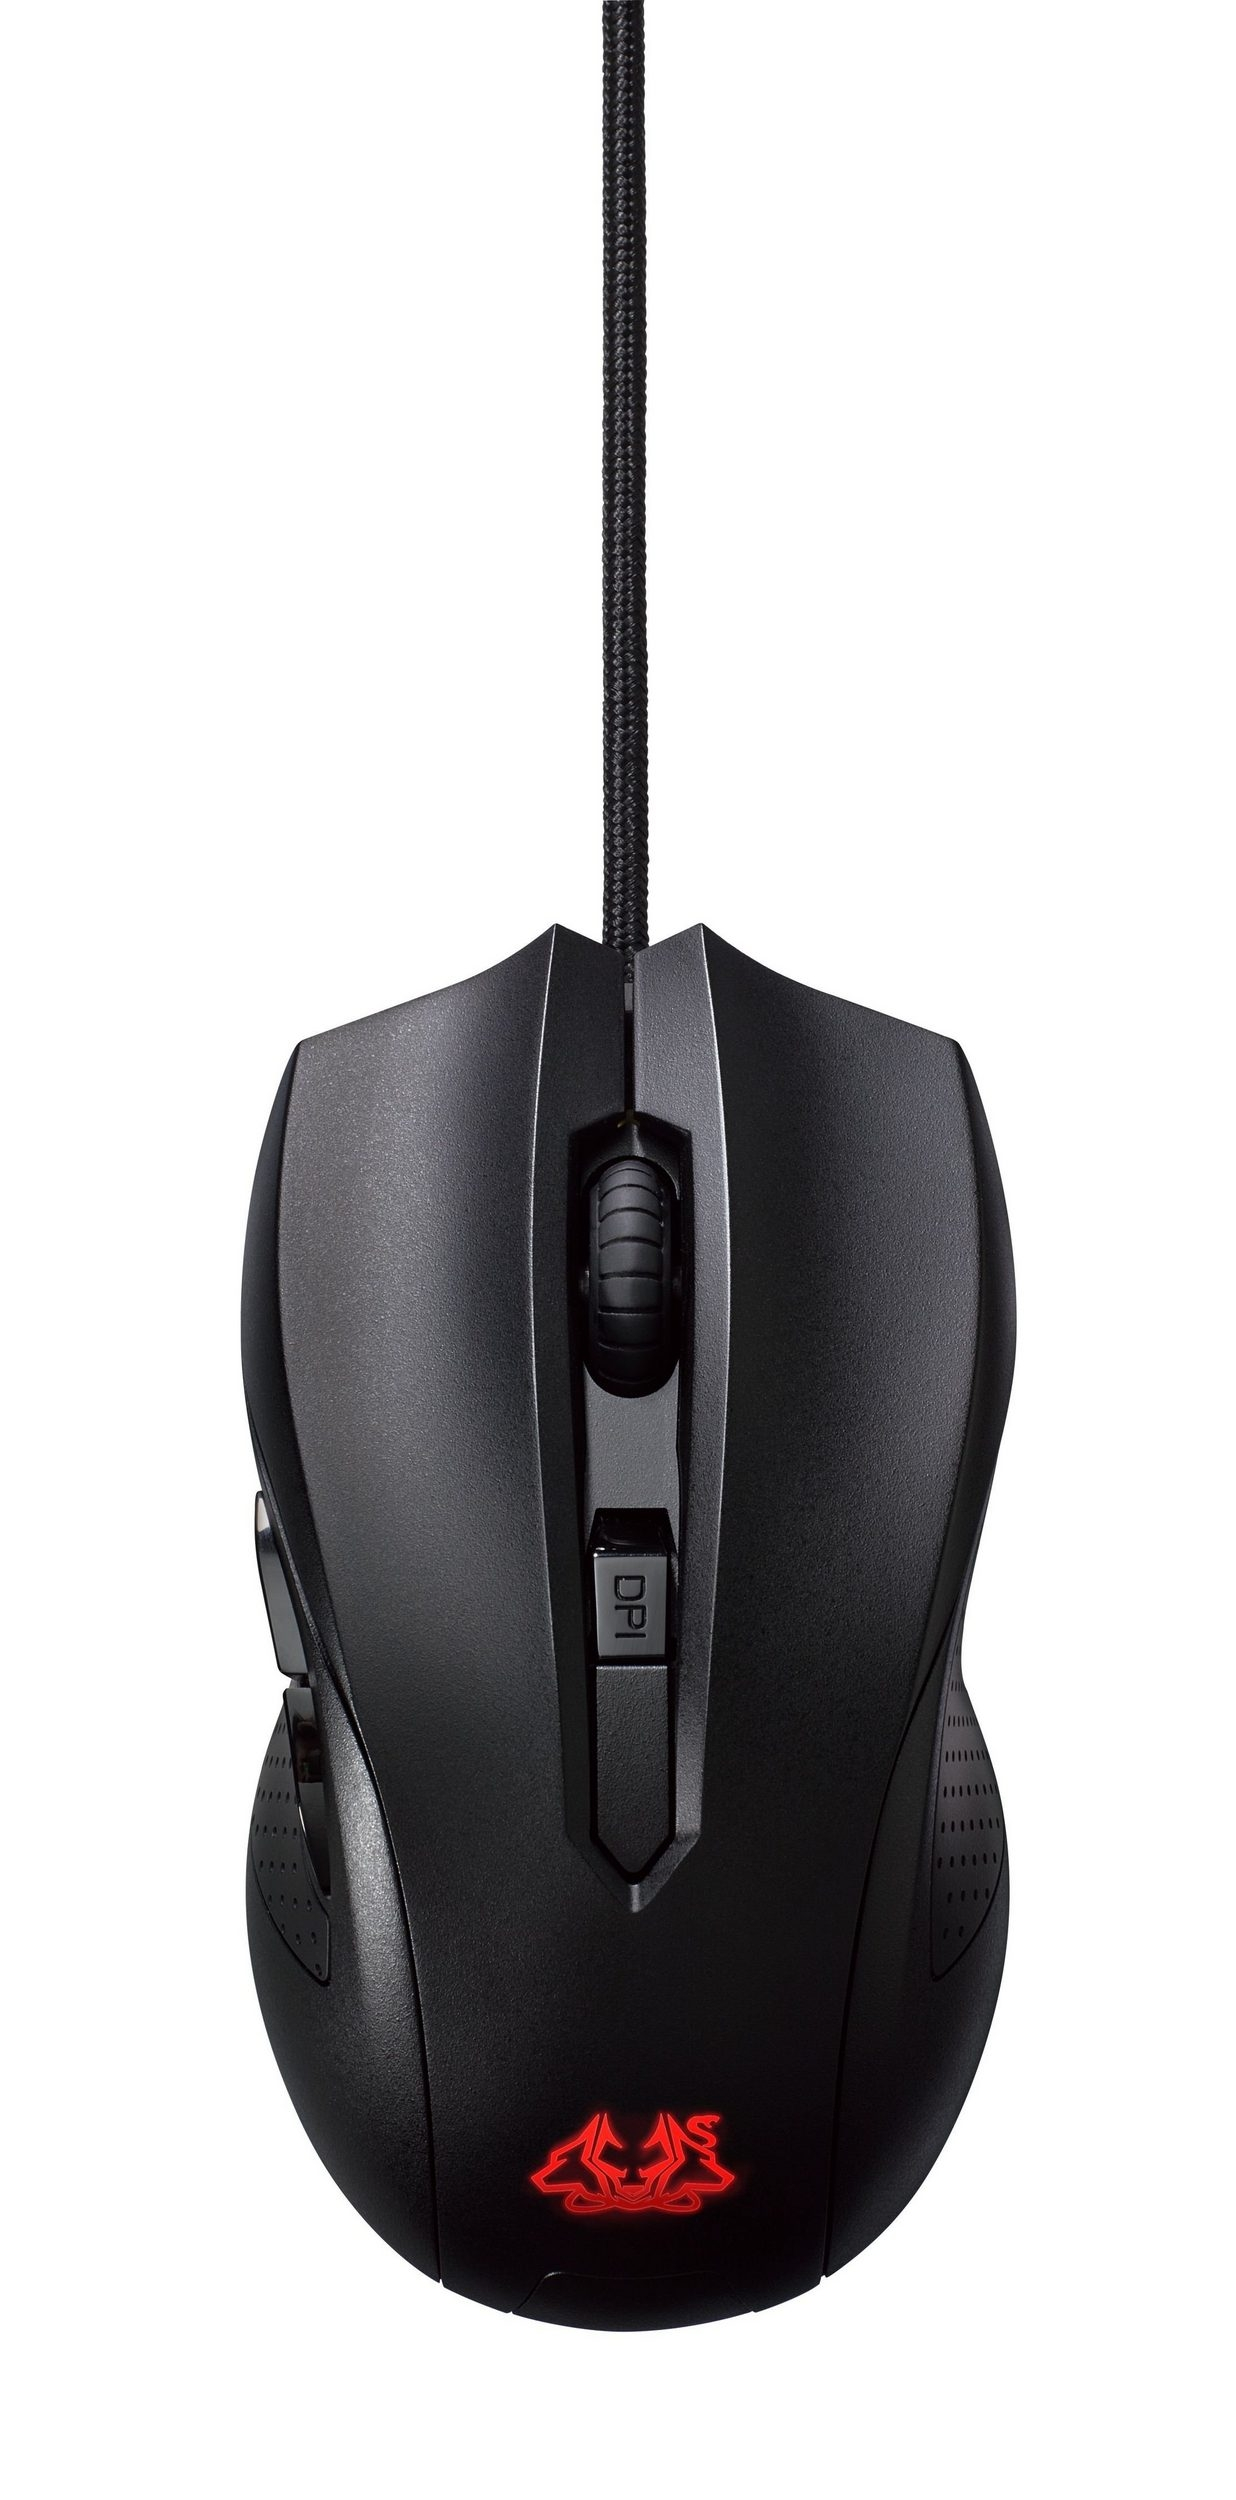 Cerberus Gaming Mouse, Gaming-Maus